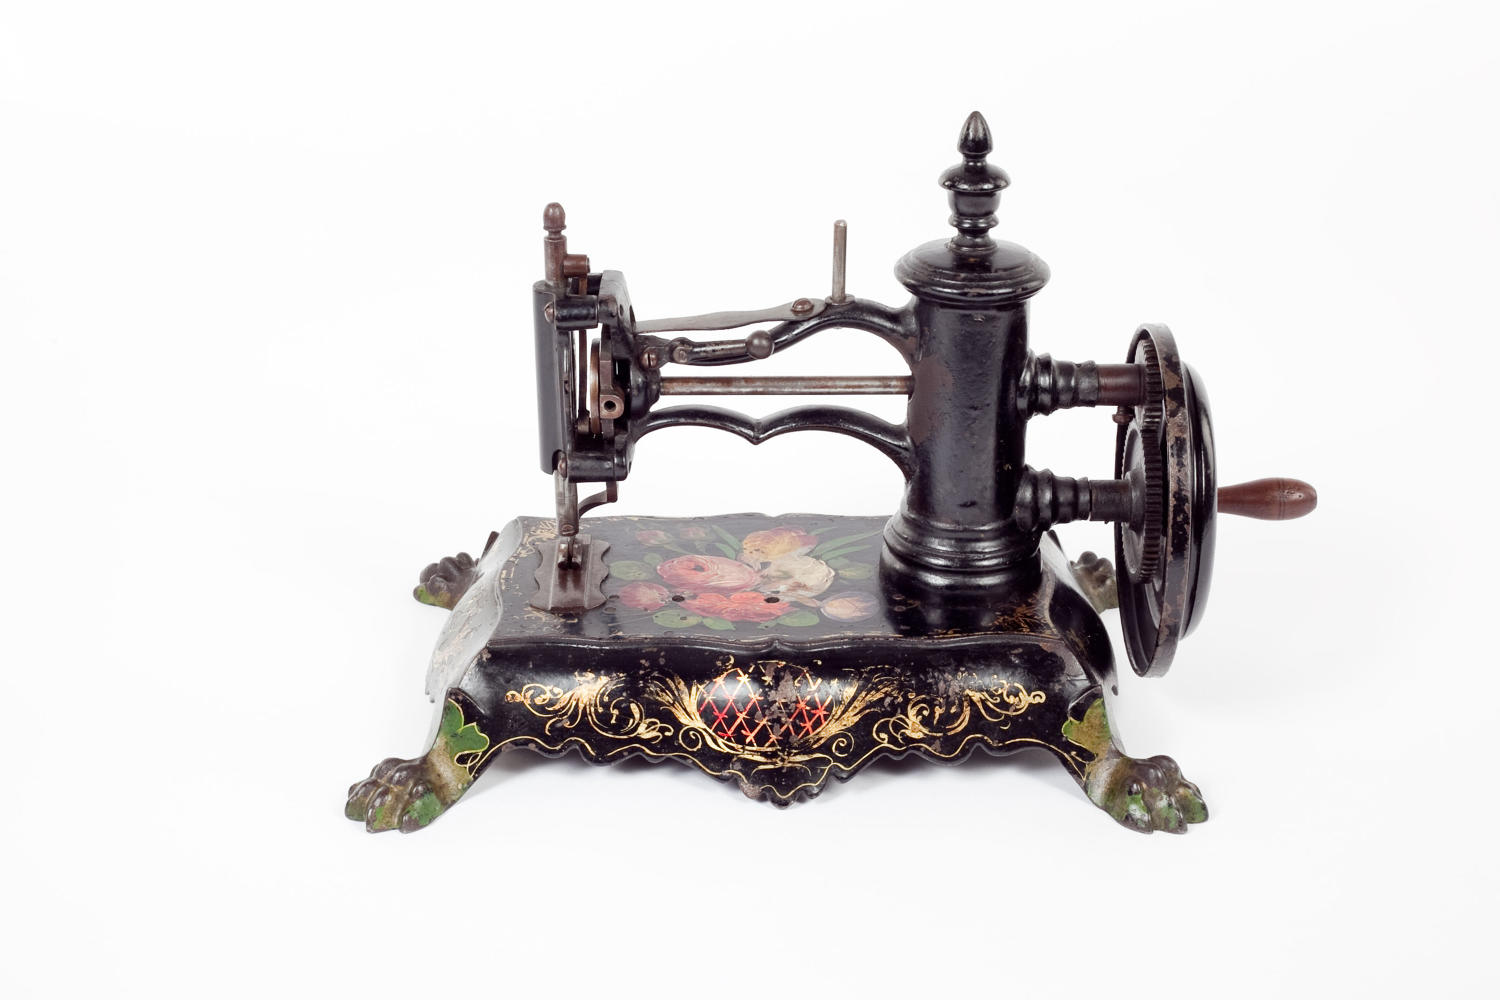 Mid 19th century 'Paw Foot' sewing machine